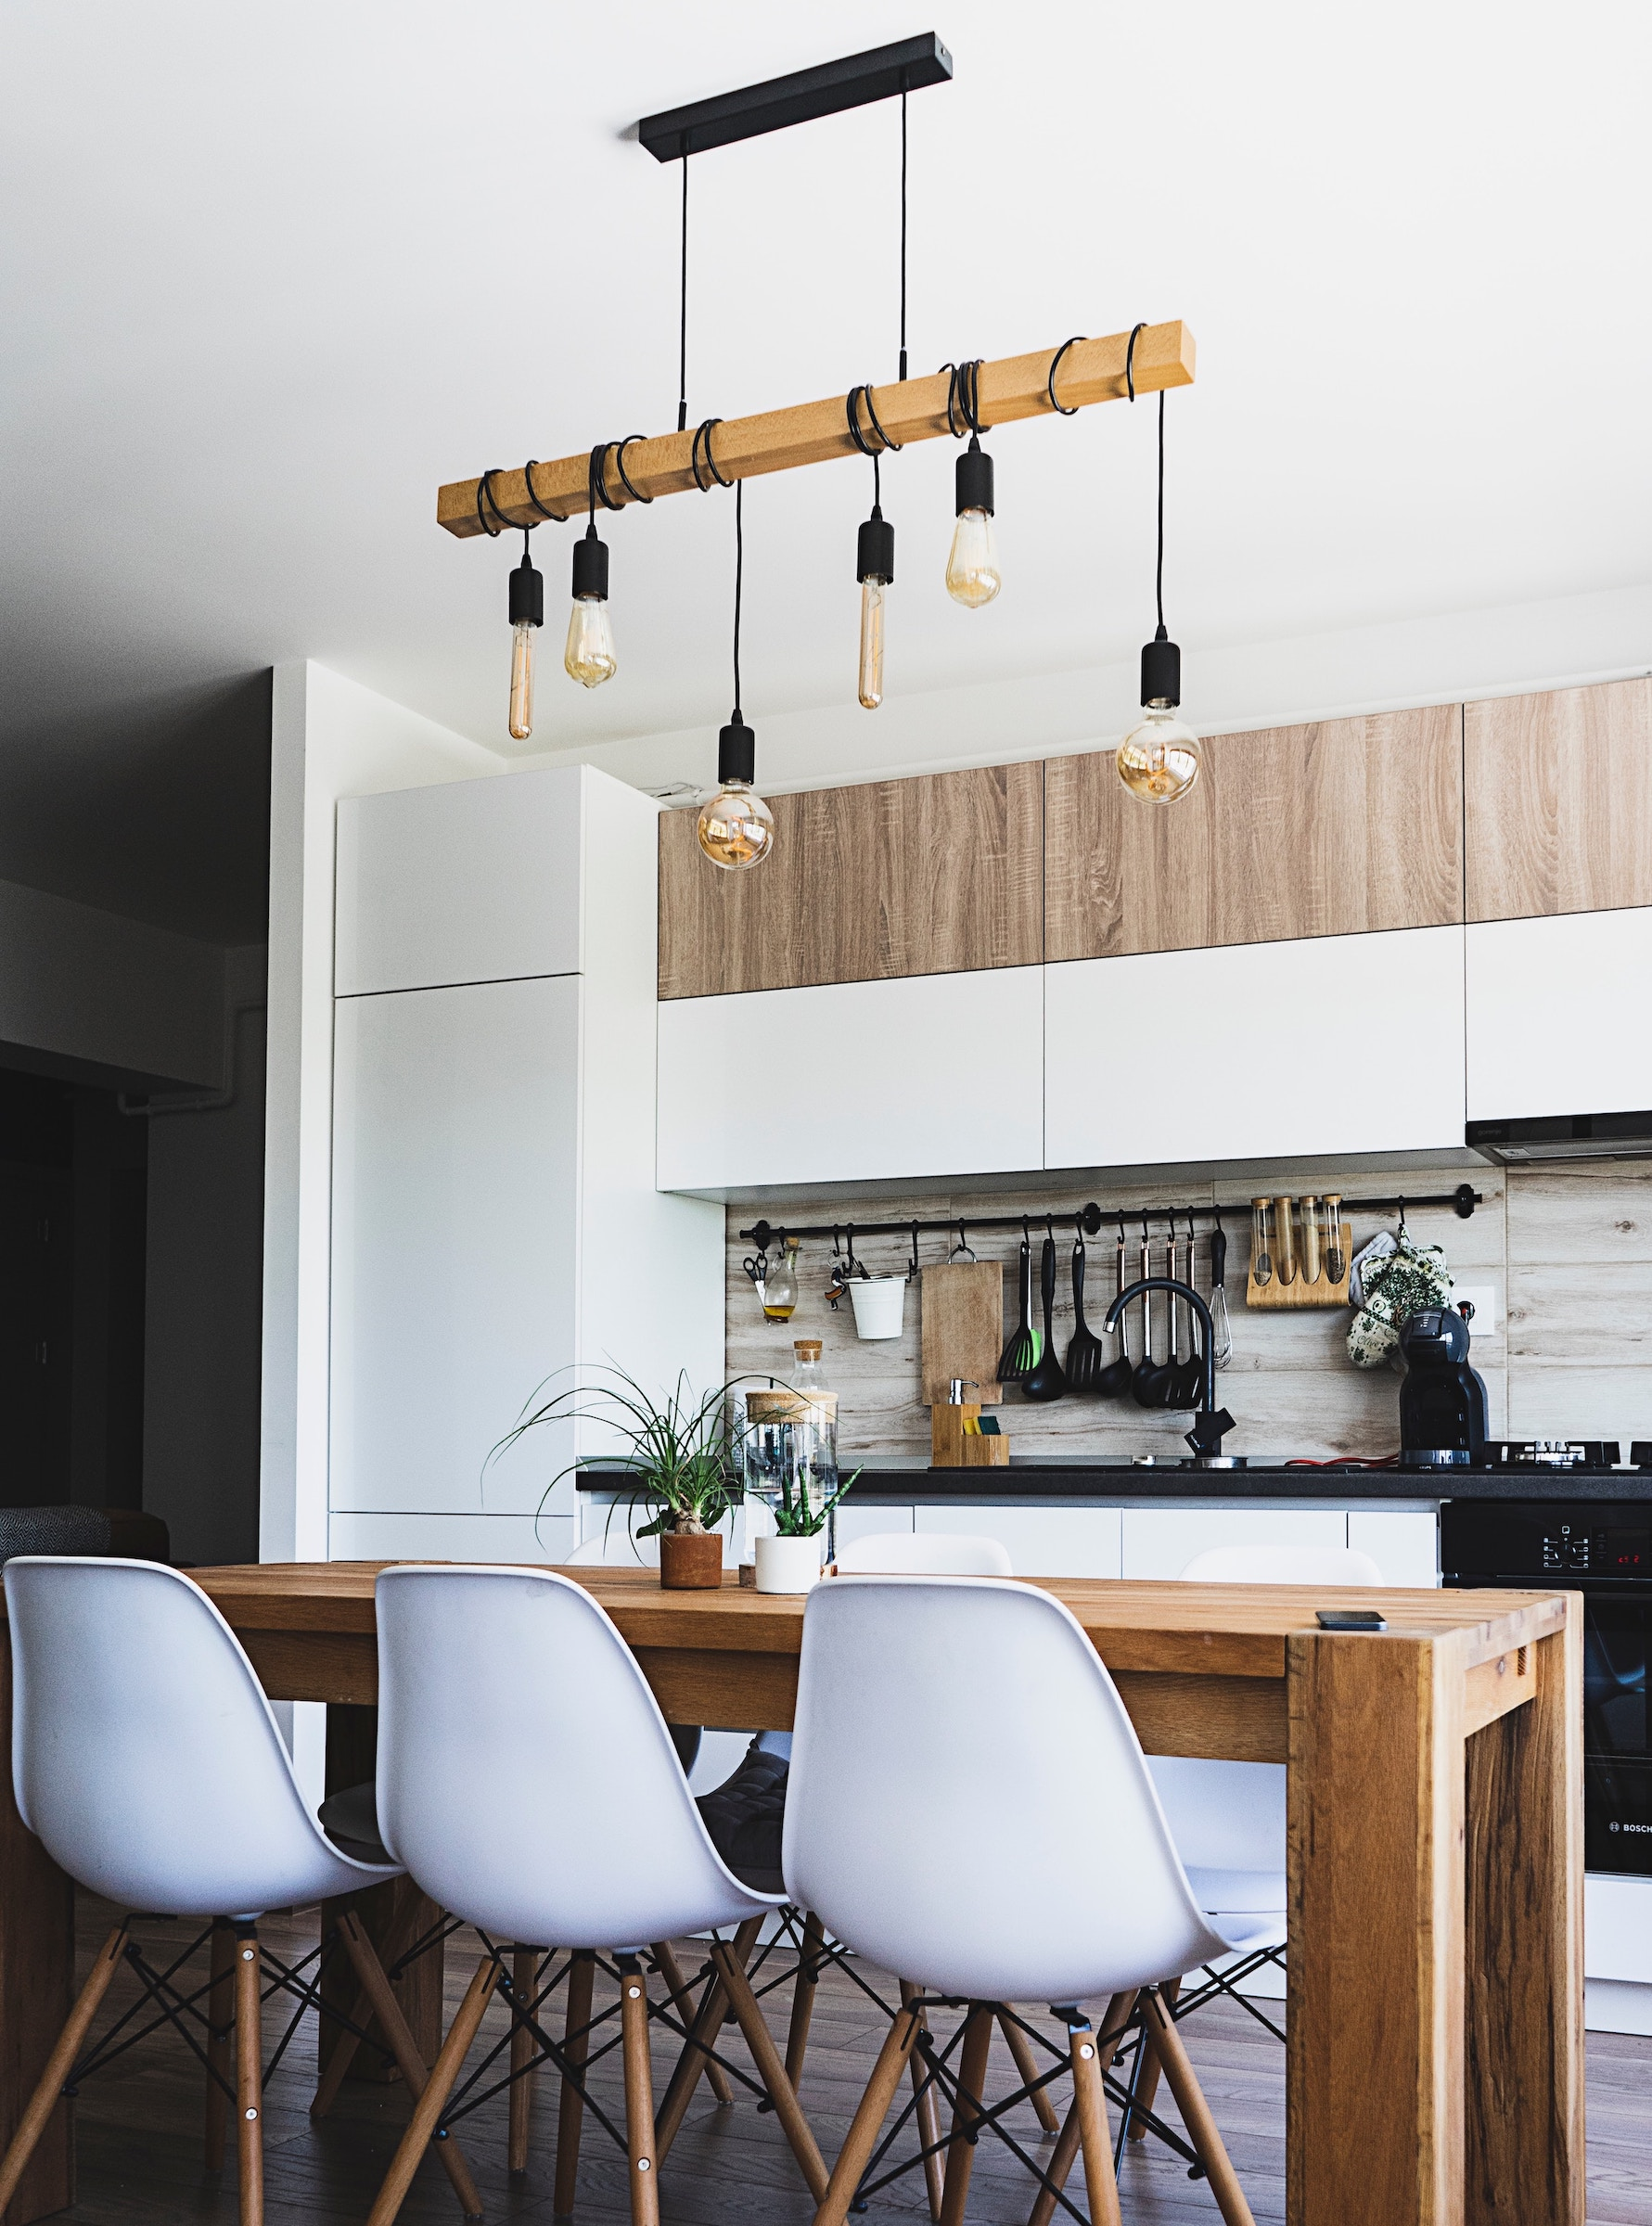 The 6 Kitchen Design Trends We're Drooling Over